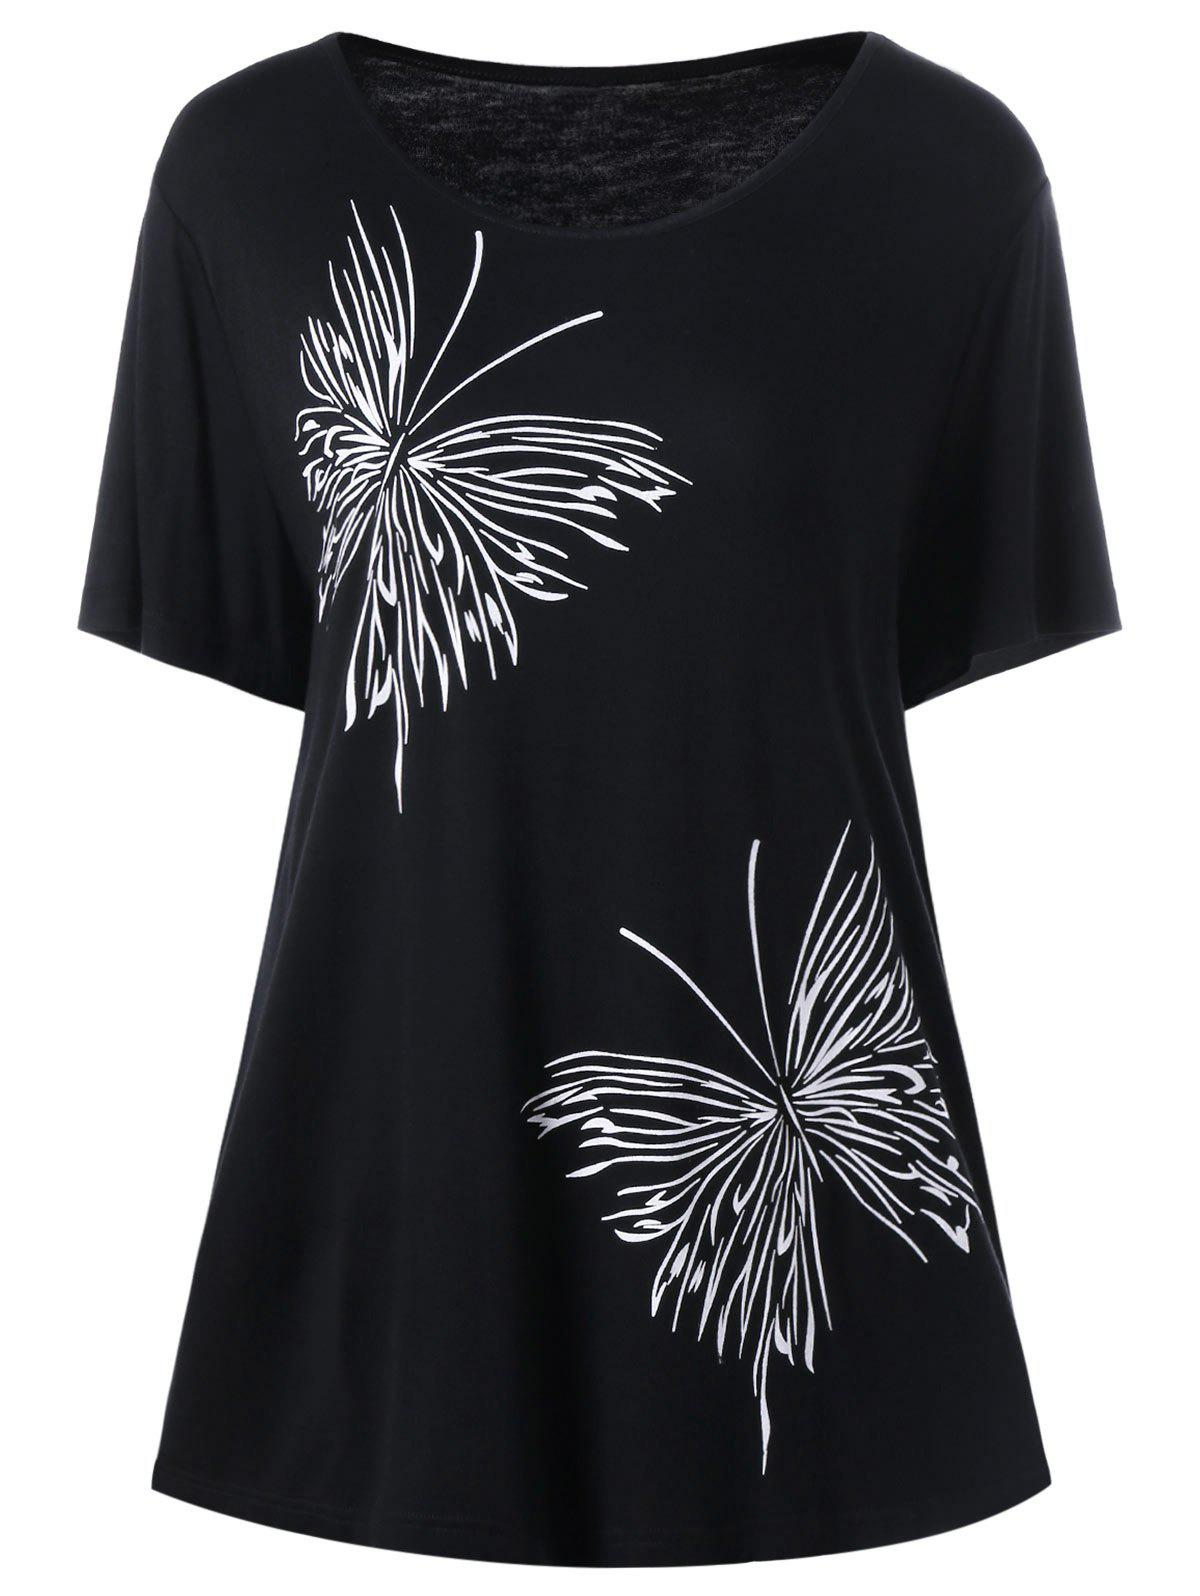 Plus Size Butterfly Graphic T-Shirt - BLACK XL